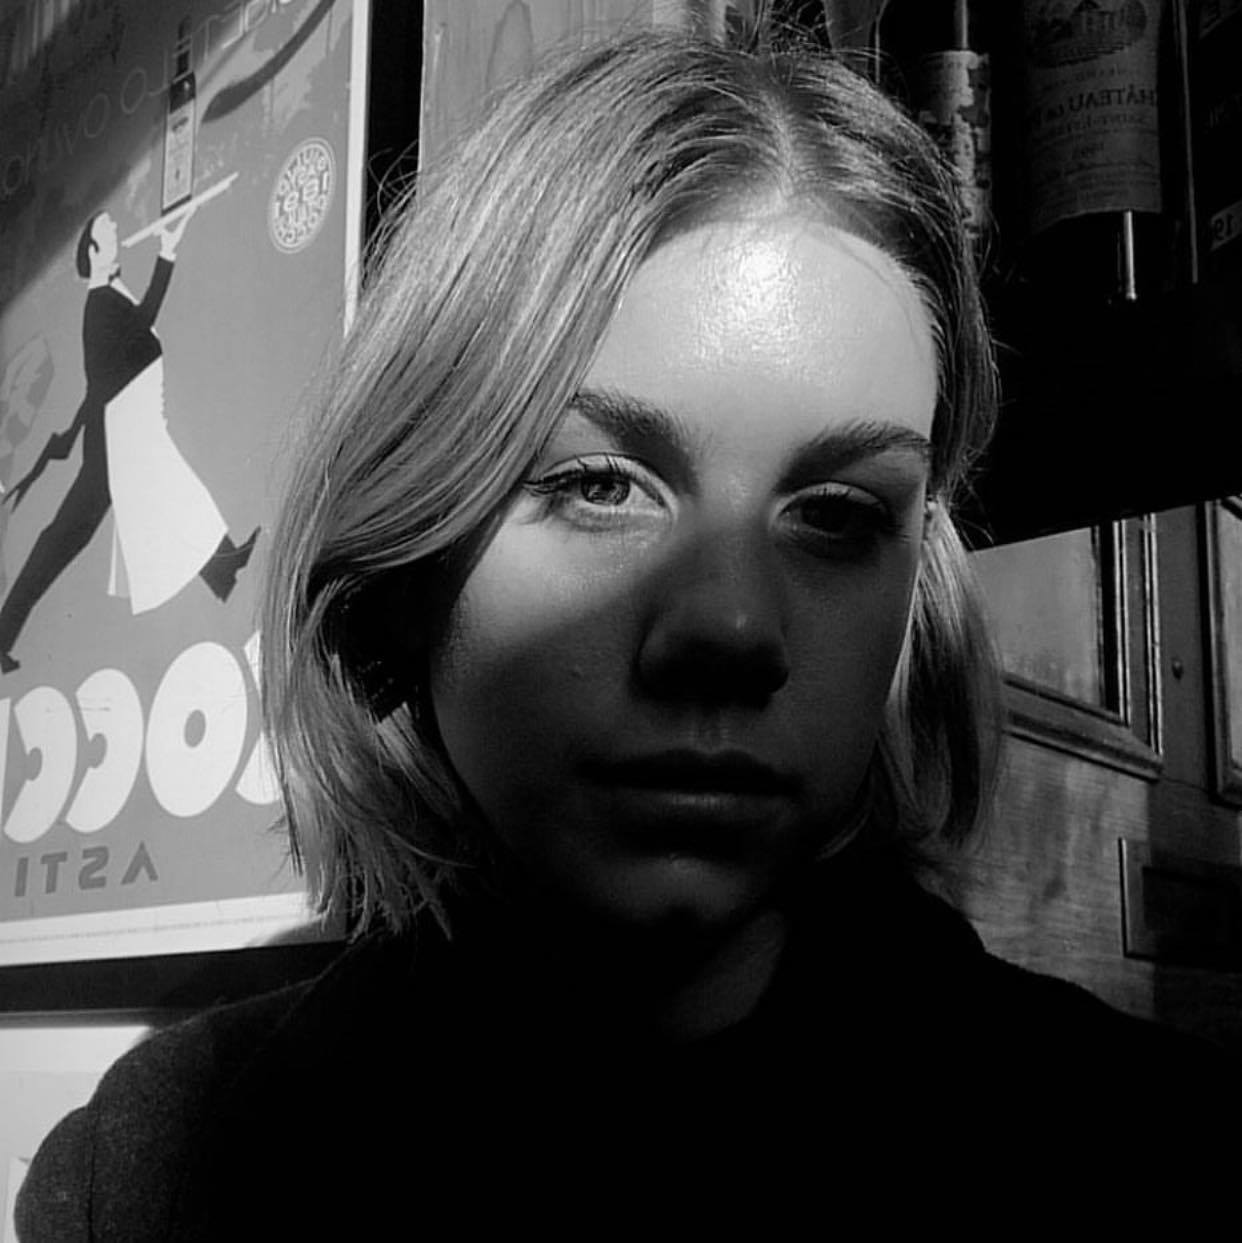 A black and white image of a person's face